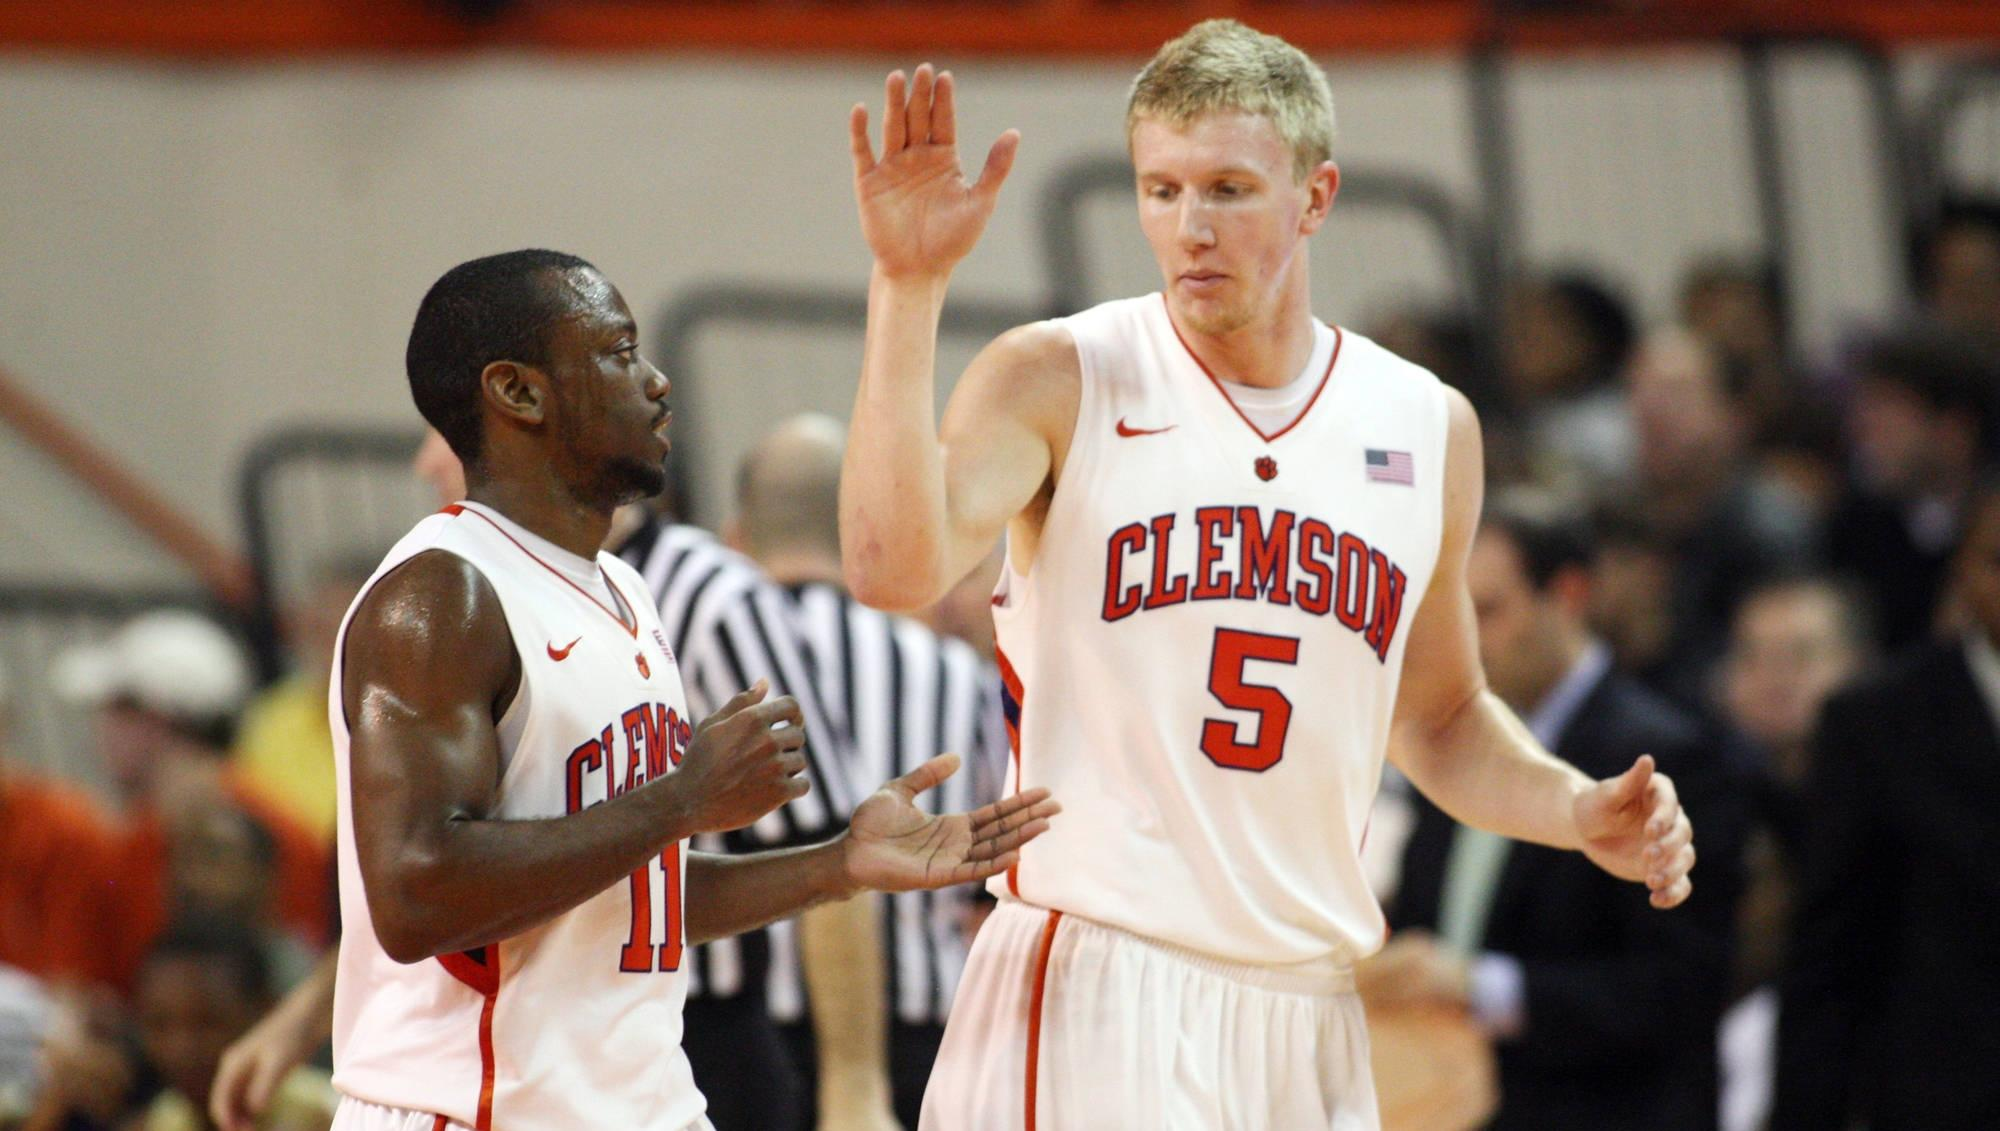 Three 2012 Clemson Graduates Sign Professional Basketball Contracts